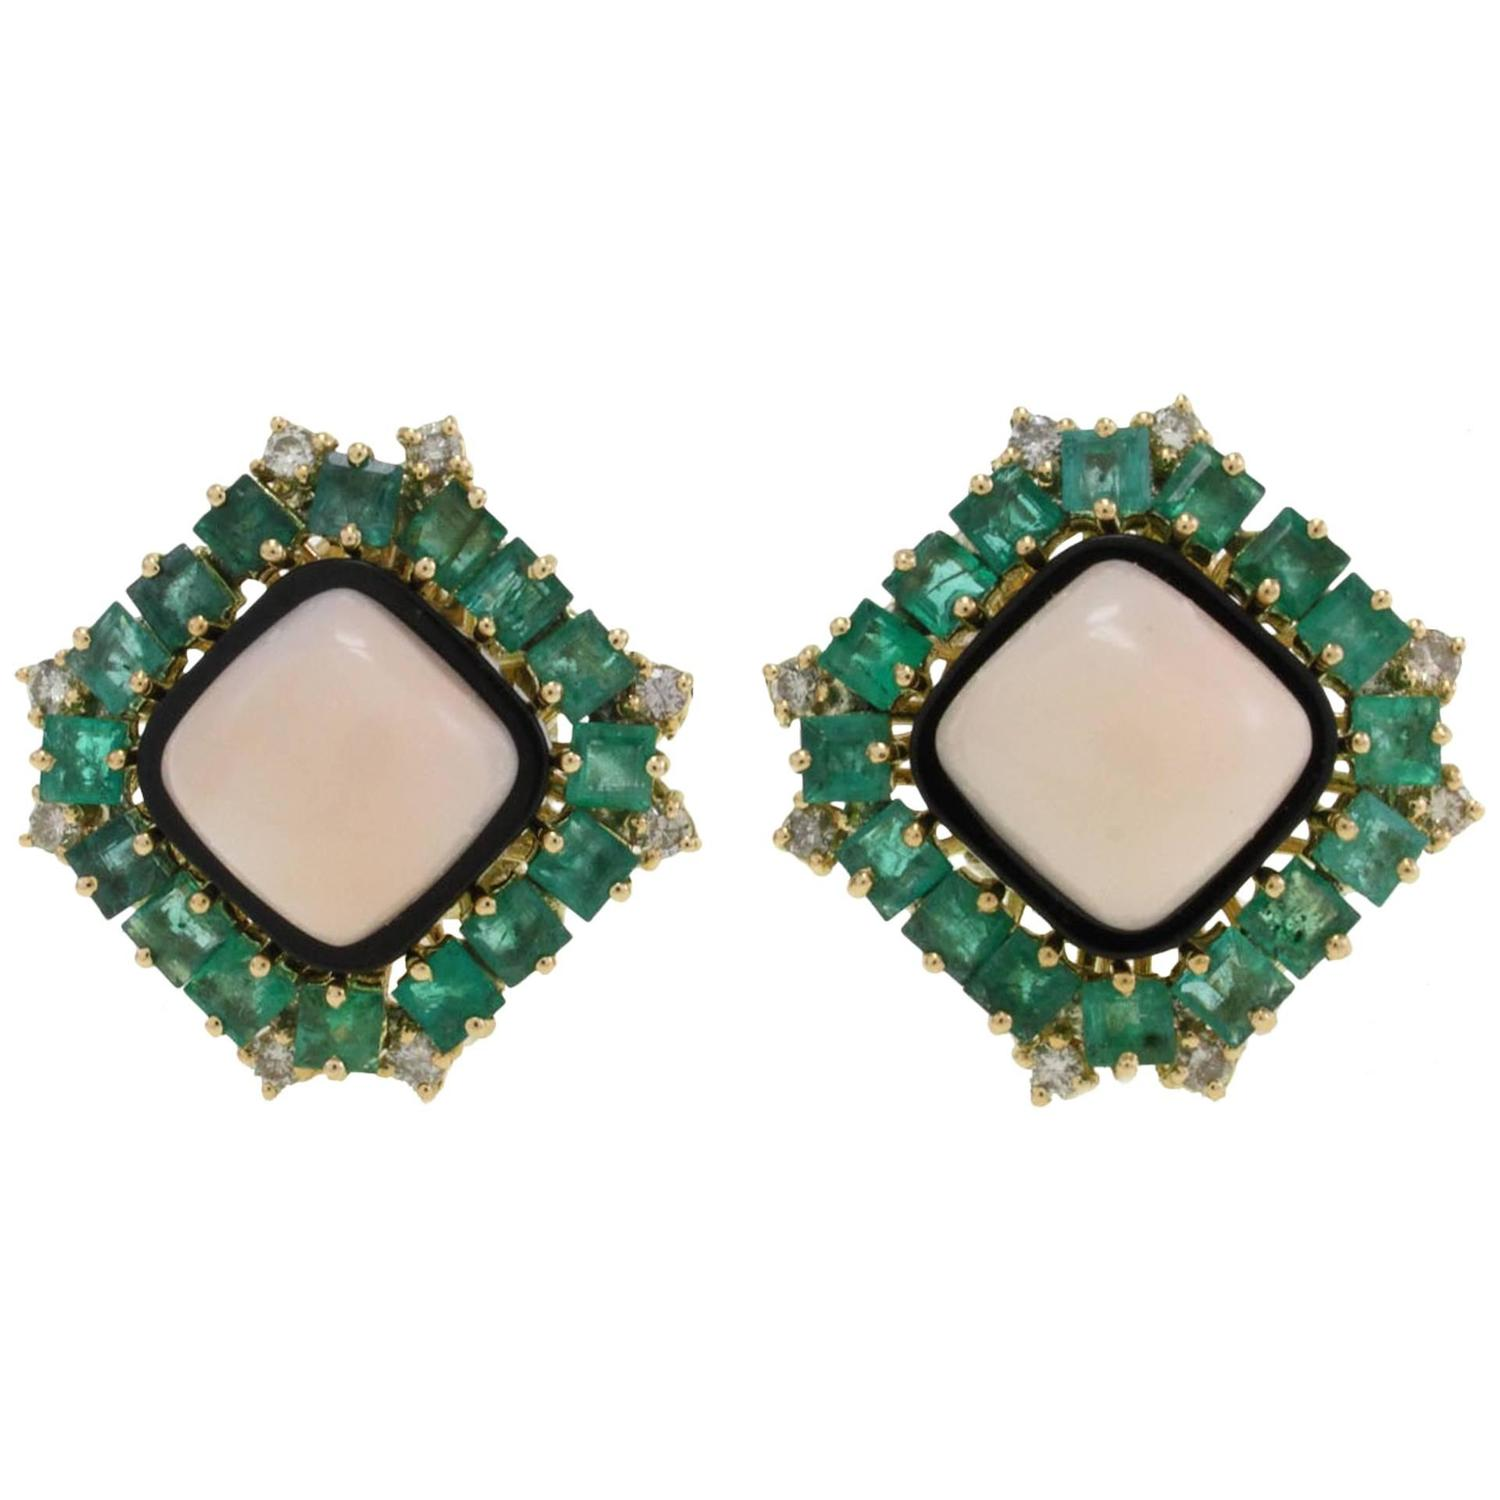 Luise Diamond Emerald Coral yx Earrings For Sale at 1stdibs